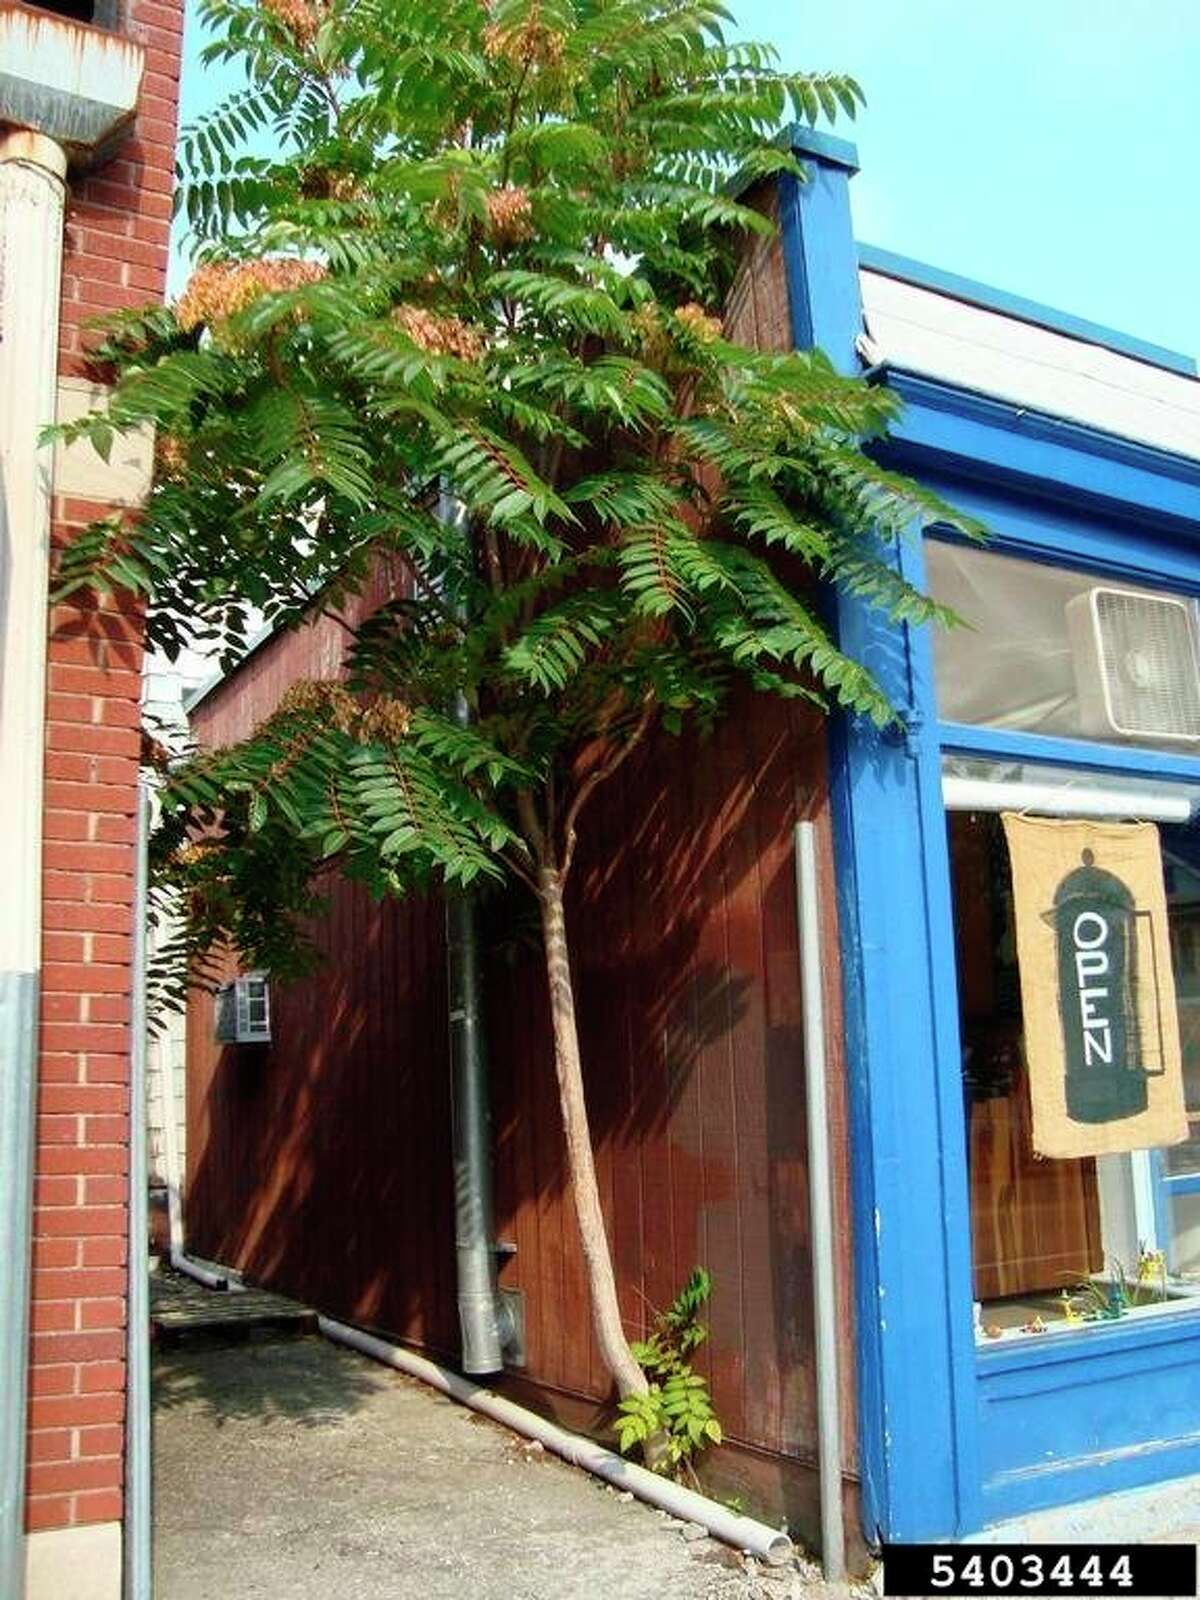 Pictured is a tree-of-heaven growing against a building. (Photo courtesy of Annemarie Smith, ODNR Division of Forestry)